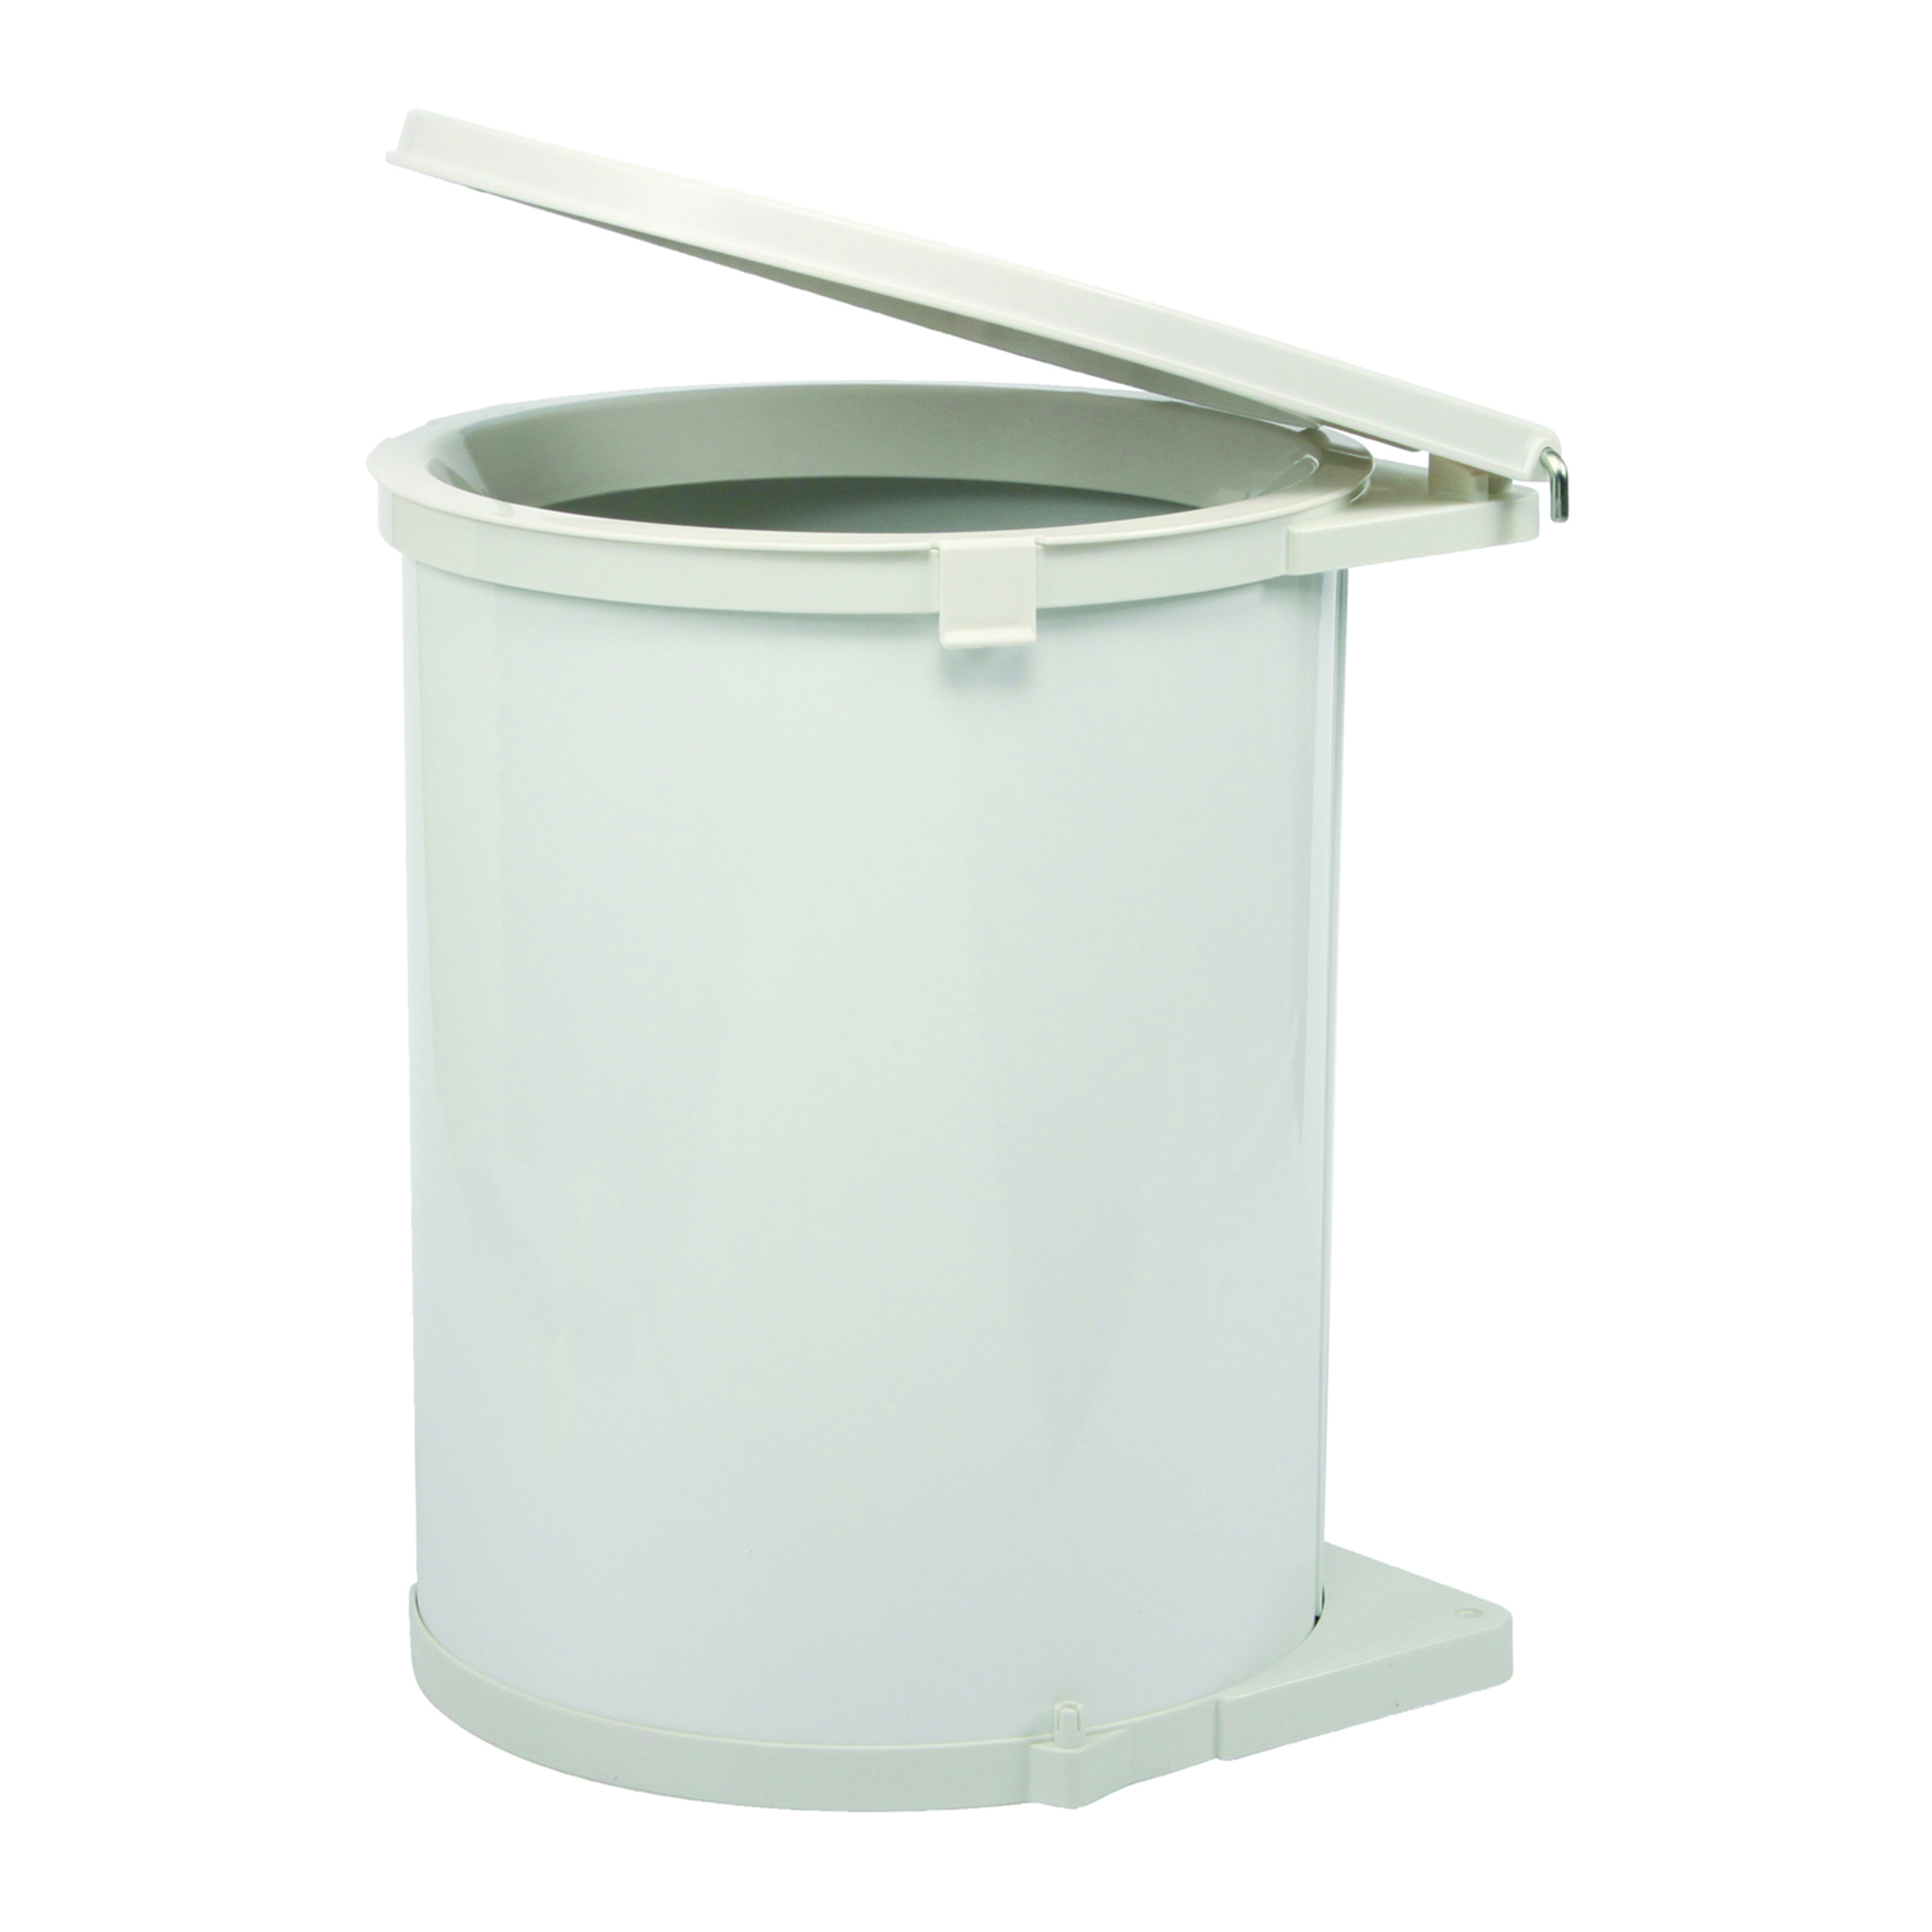 Real Solutions Single 32qt Pivot-out Waste & Recyling Unit with Lid, White